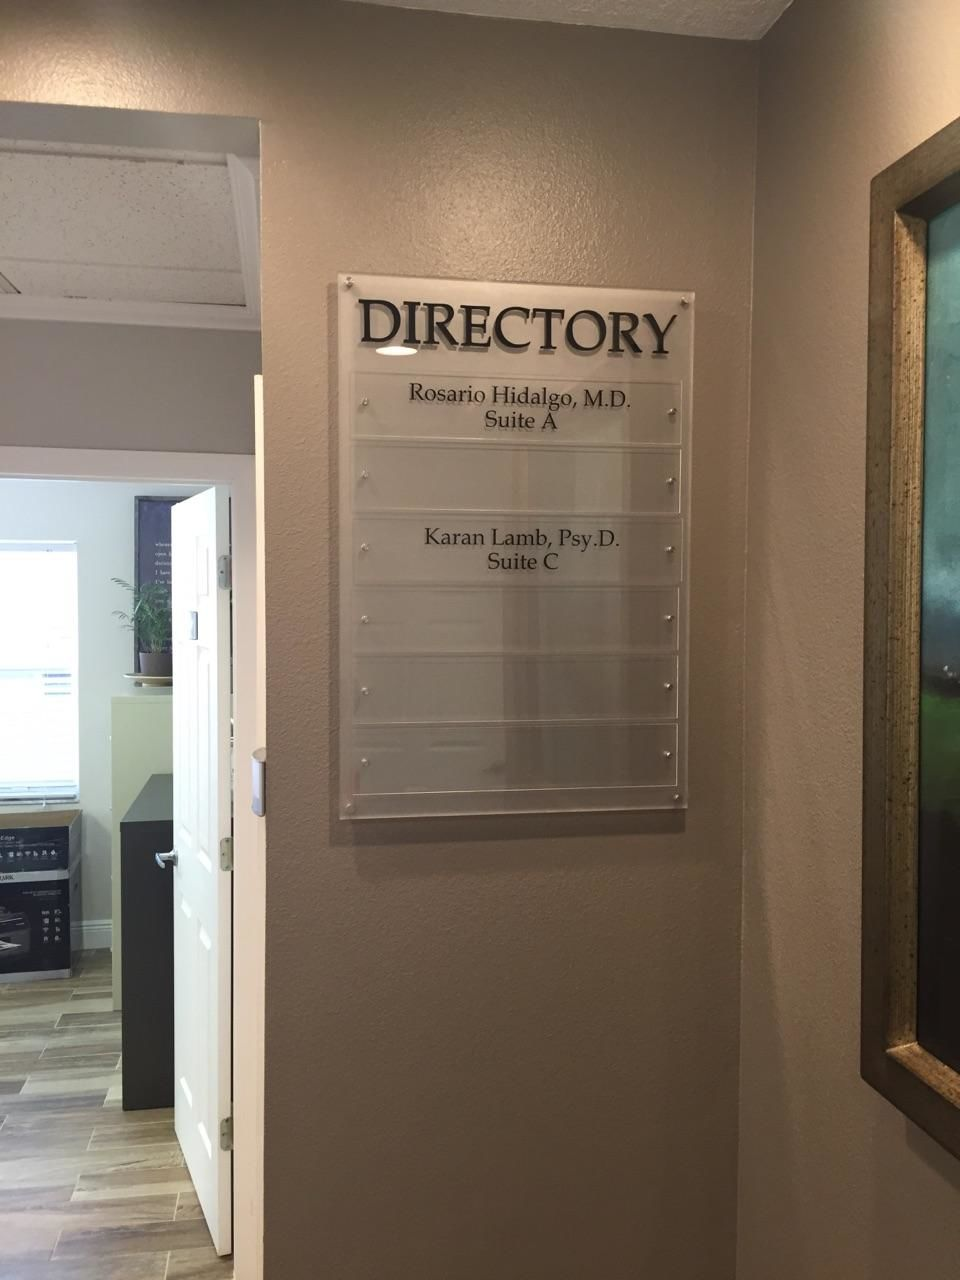 Custom Indoor Directory Signs Signs By Tomorrow Of South Tampa Directory Signage Systems